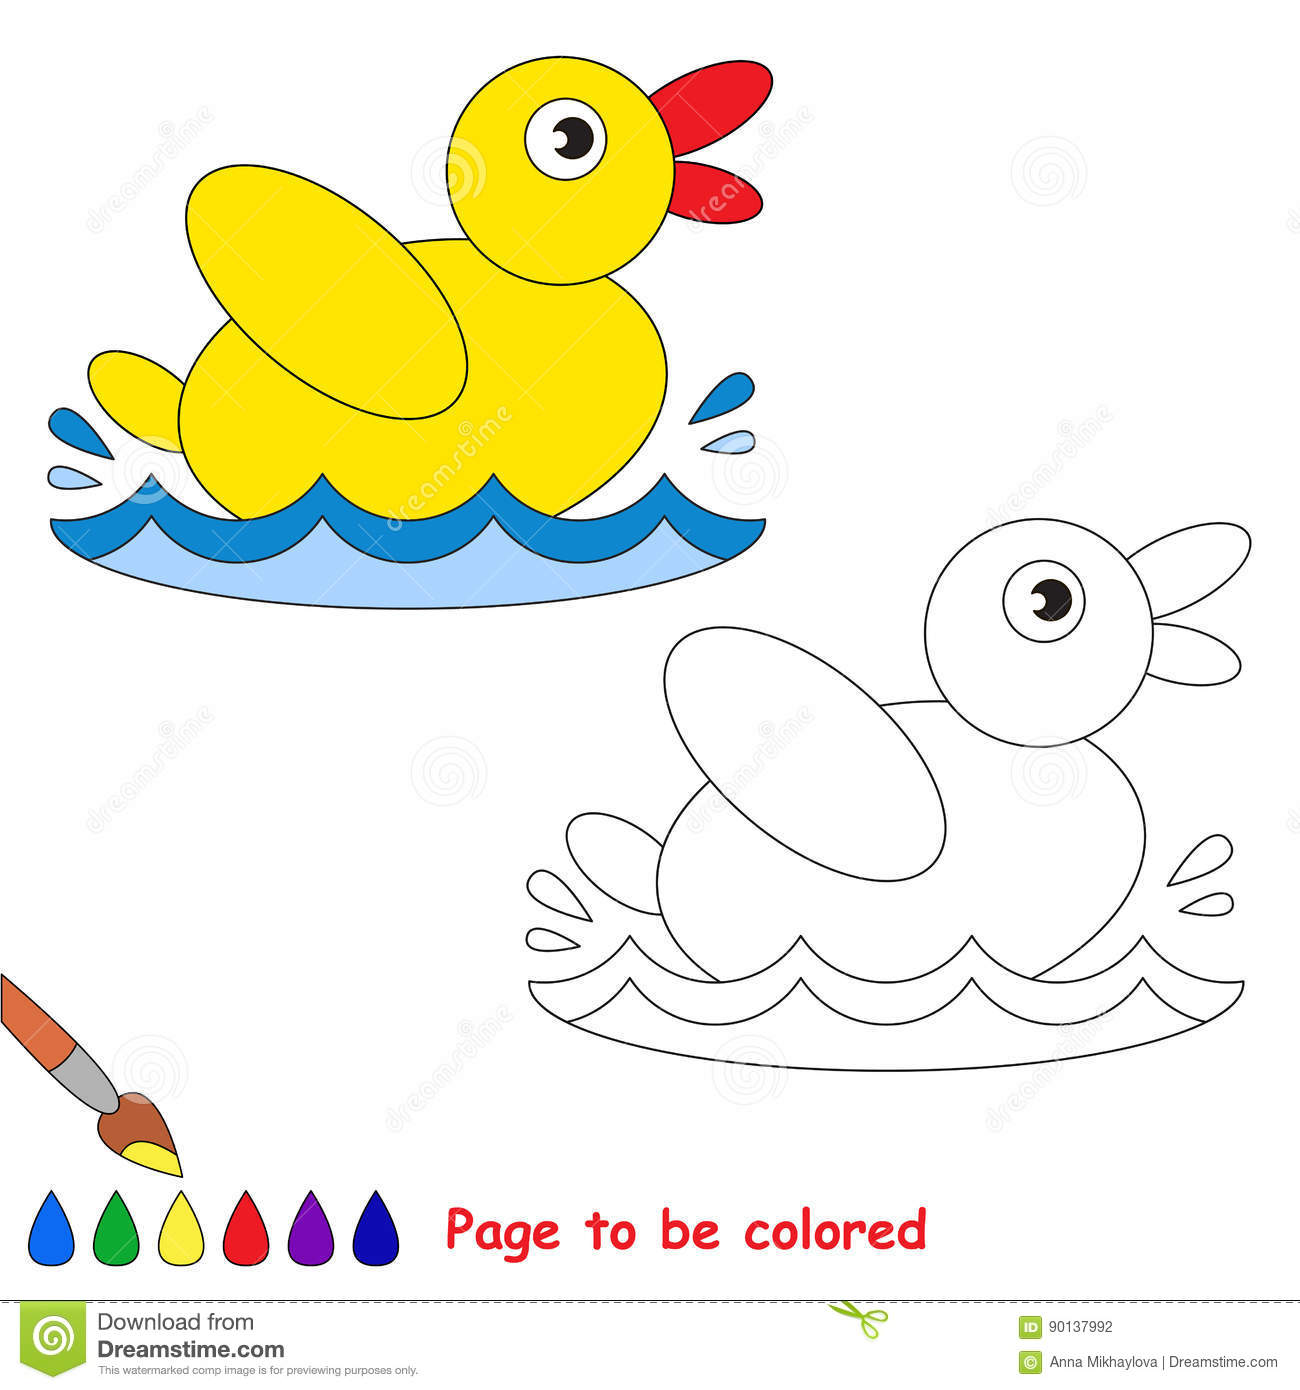 Page To Be Colored Simple Education Game For Kids Vector